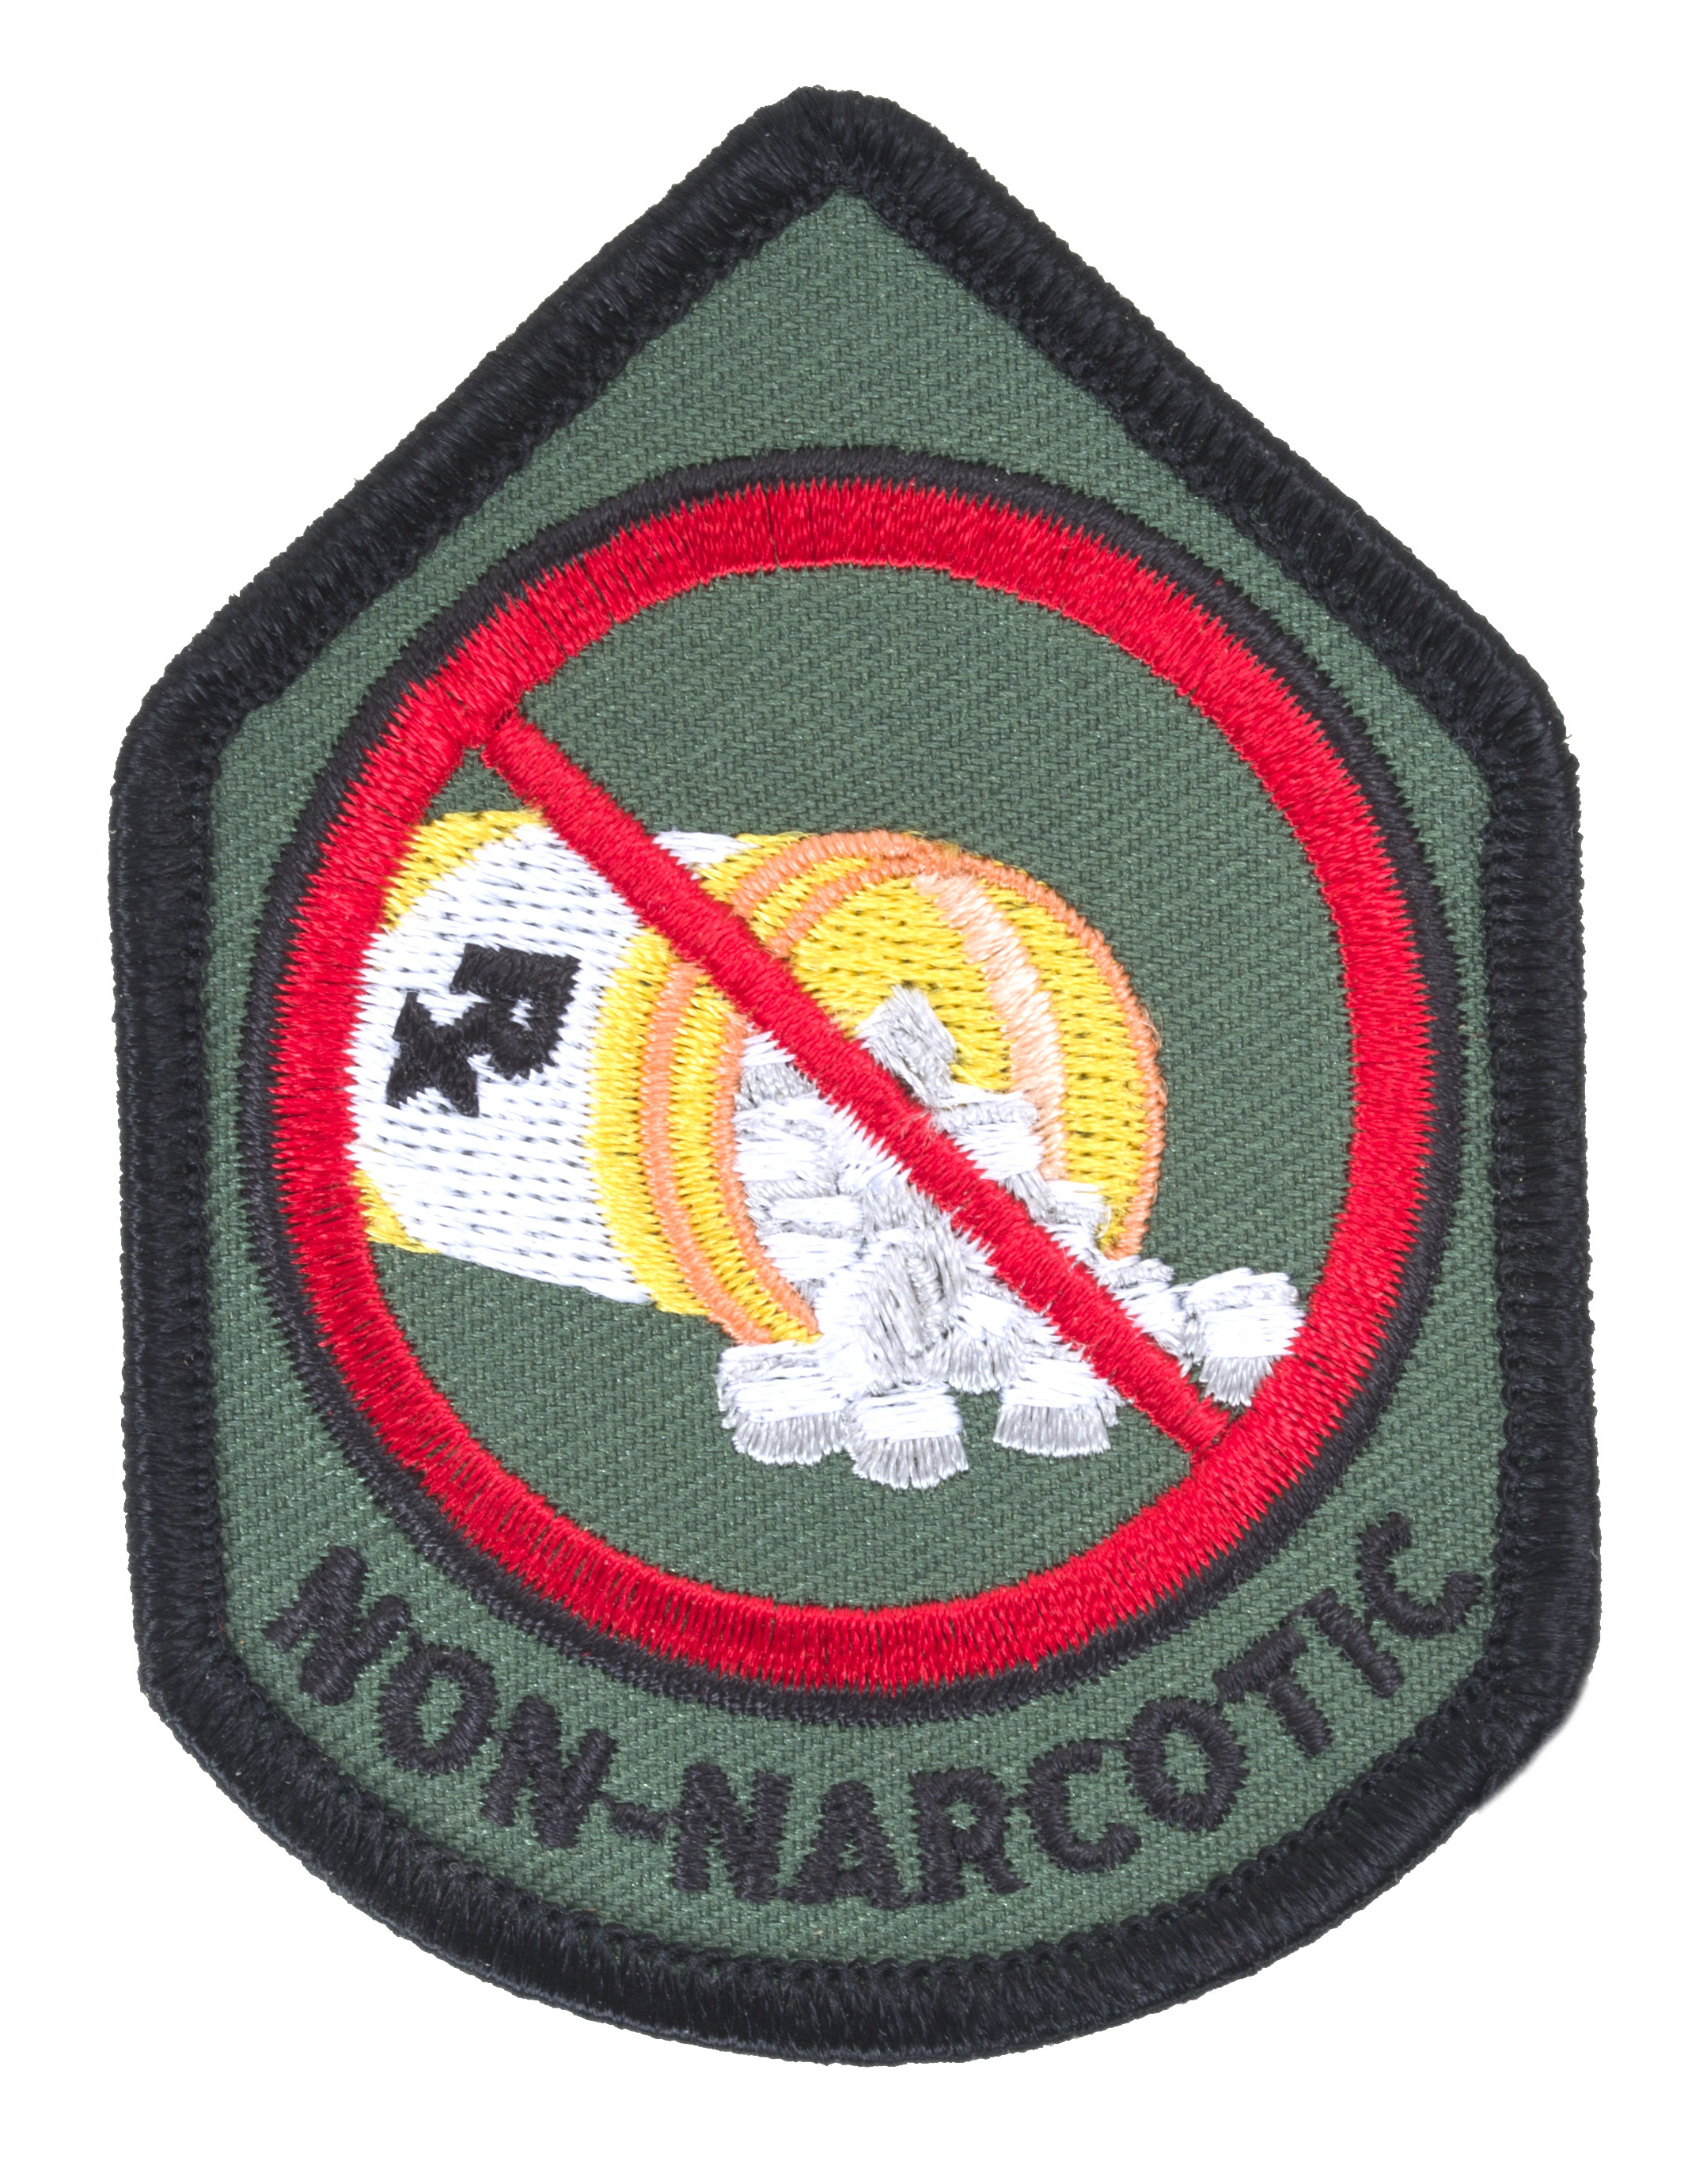 Non-Narcotic Patch Photo.jpg